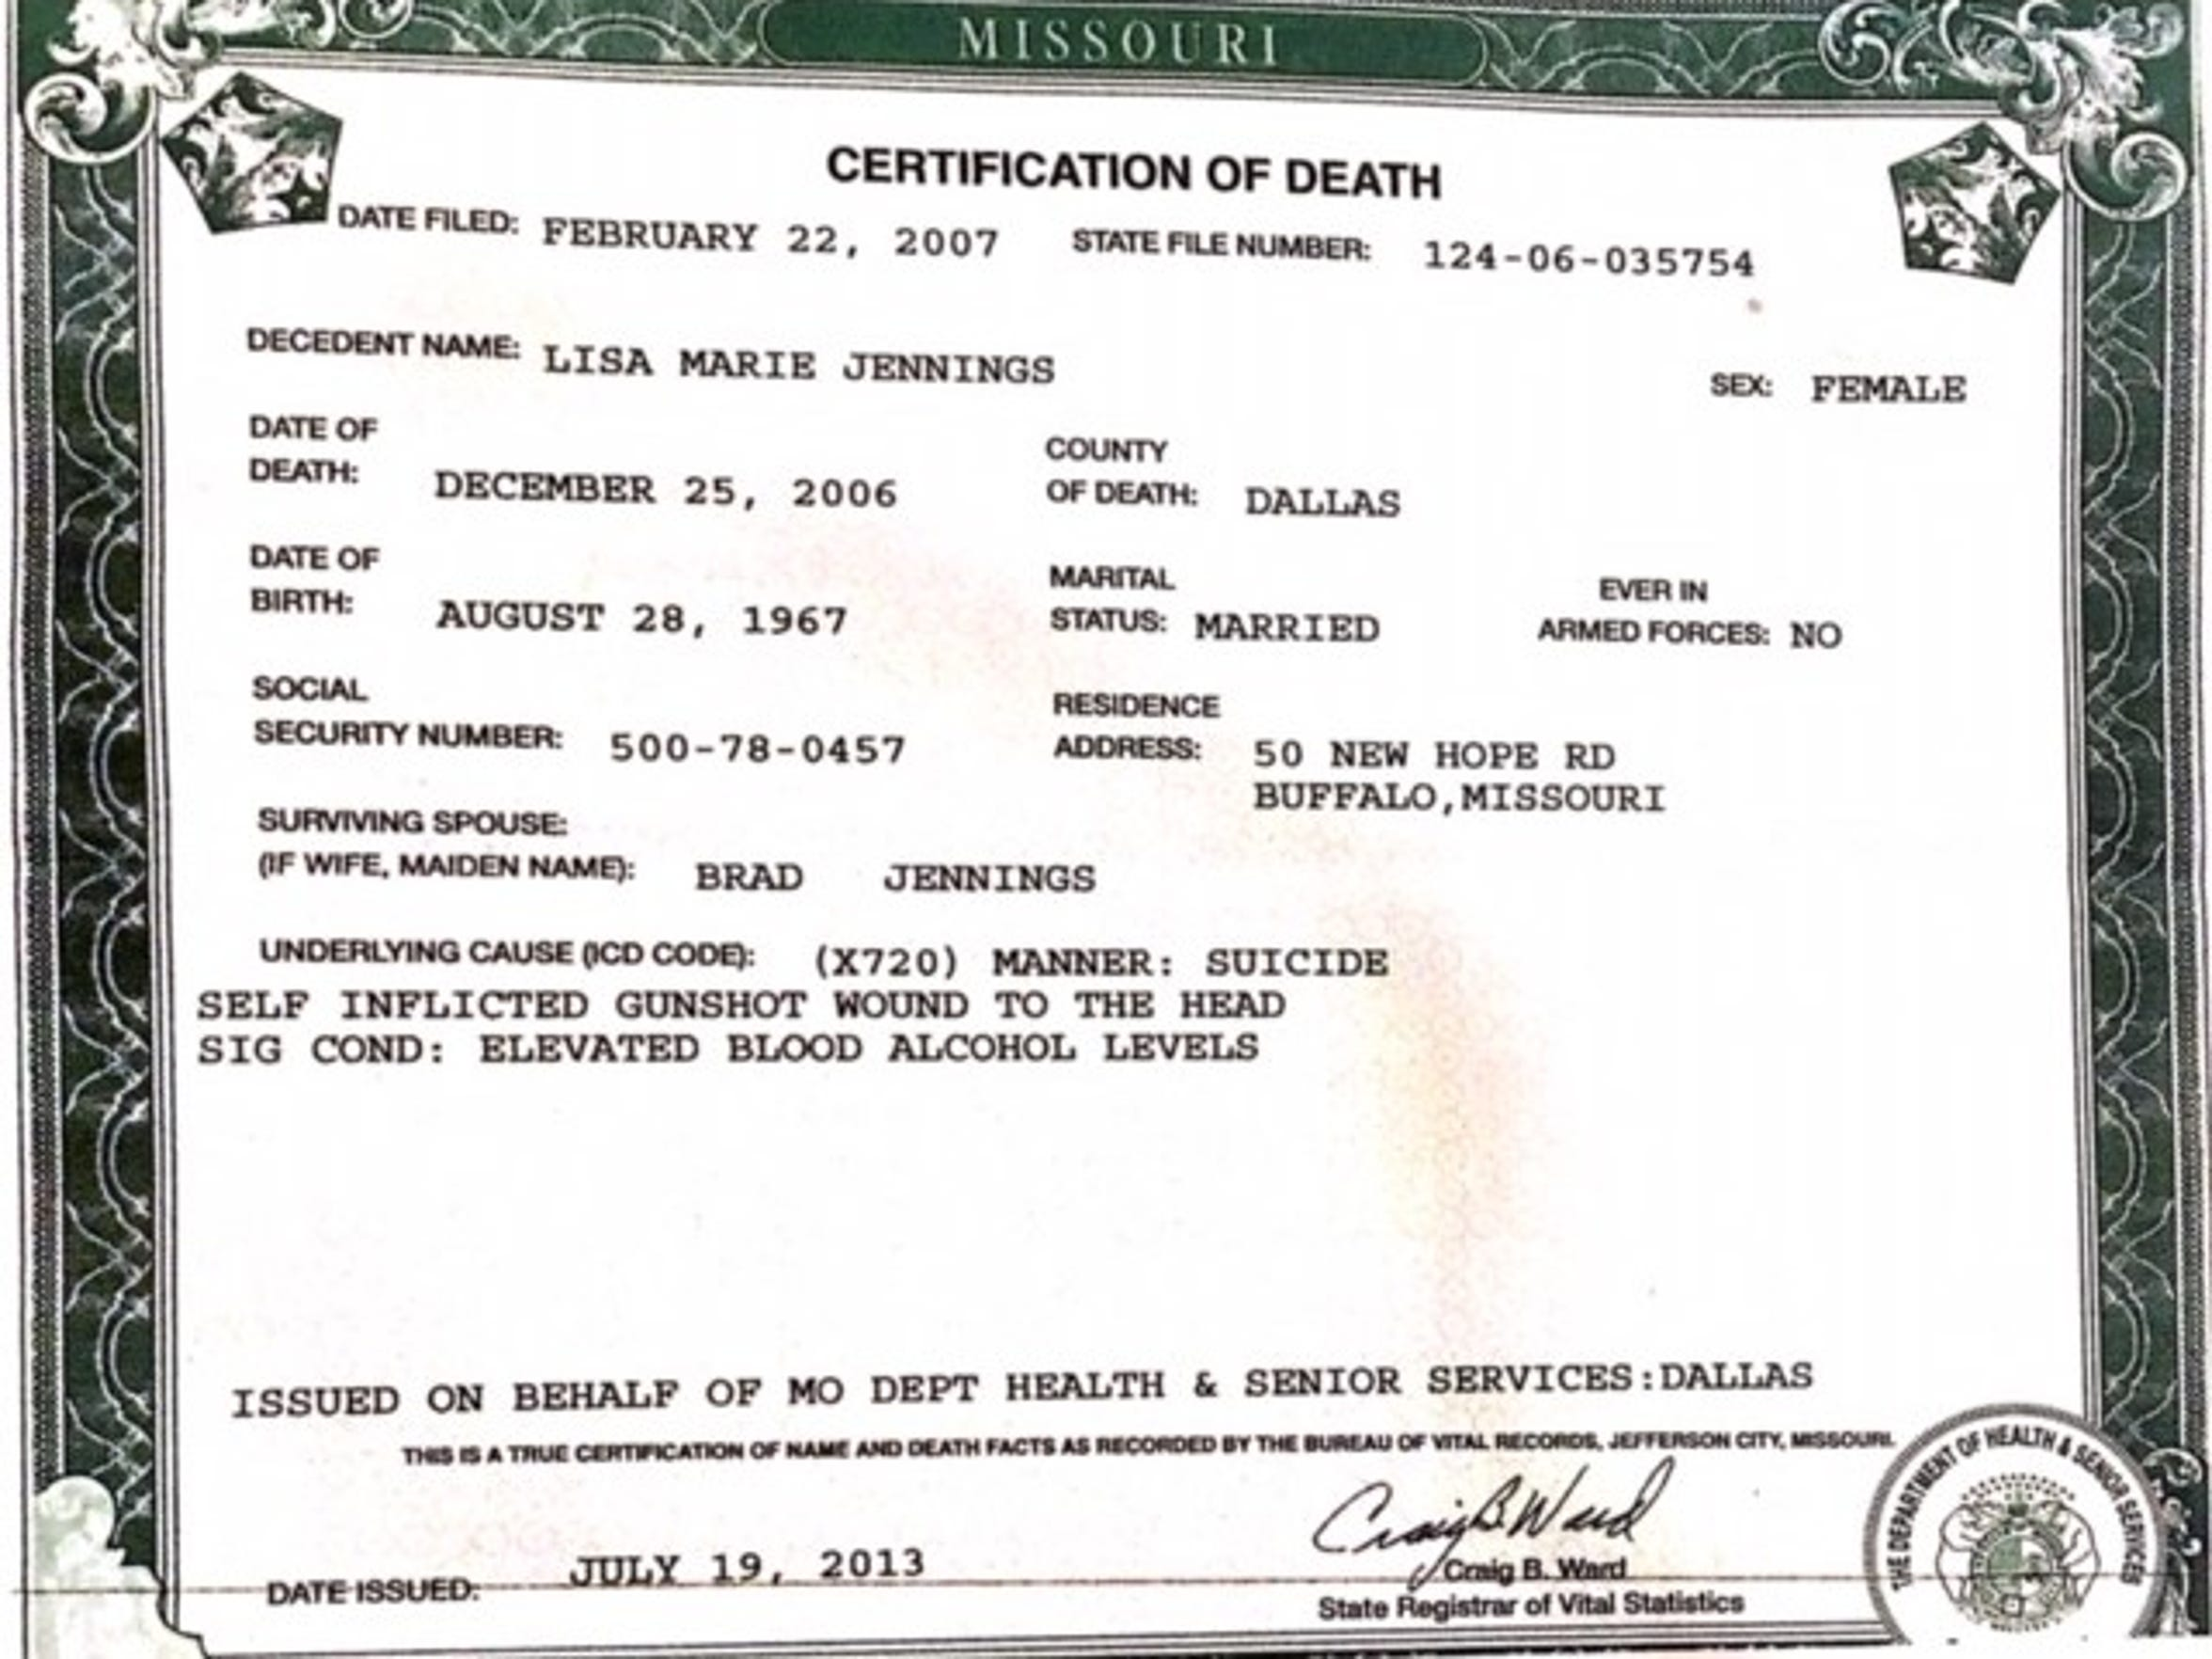 Lisa Jennings' death certificate states she died from a self-inflicted gunshot wound to the head.